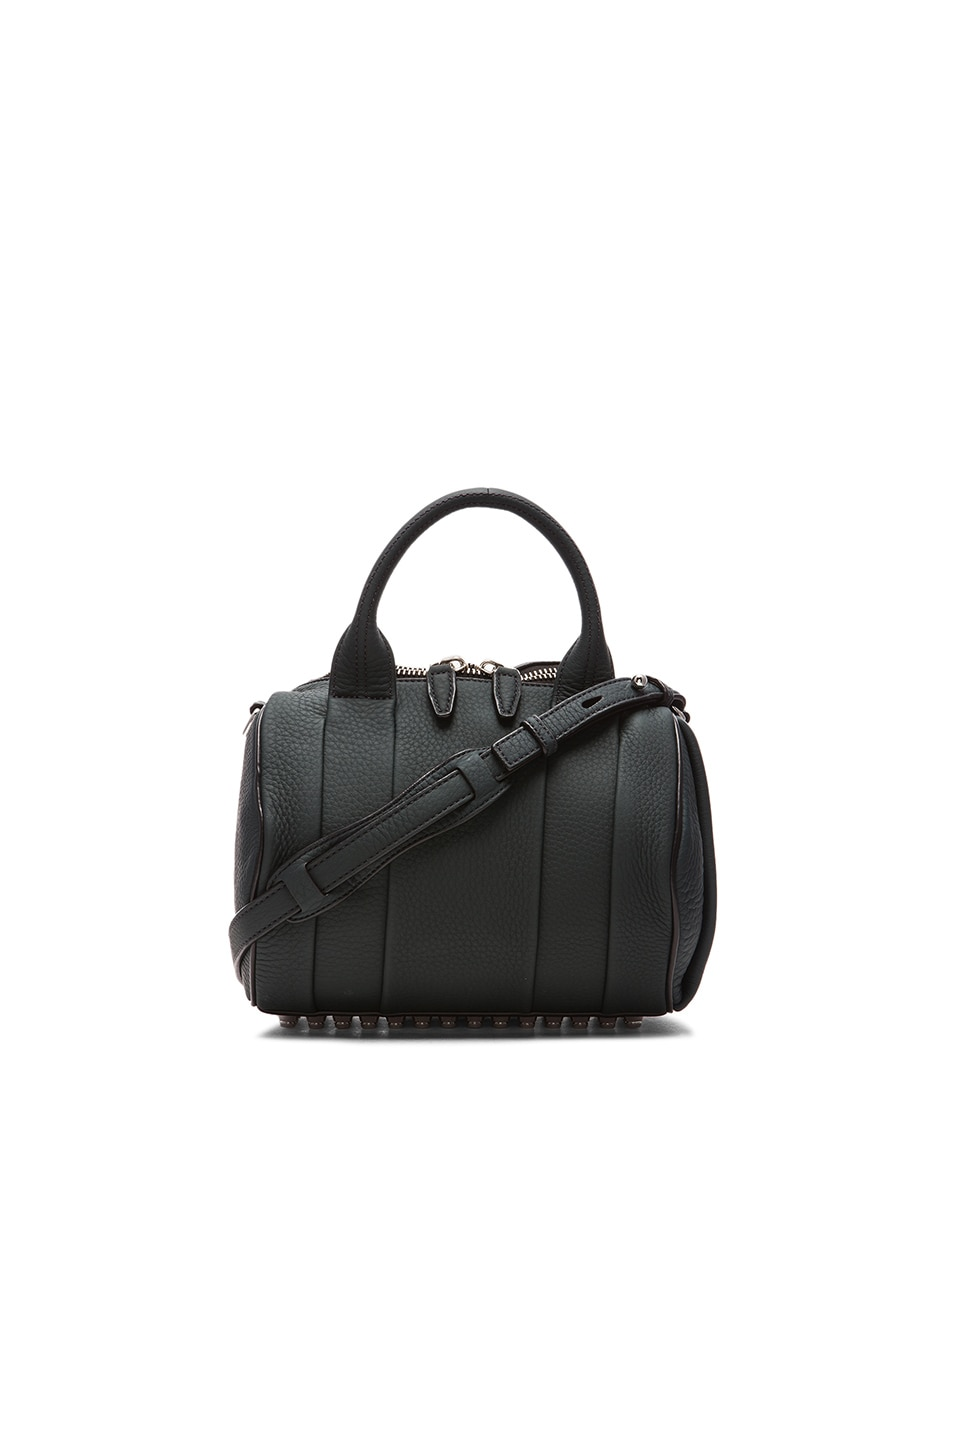 Image 1 of Alexander Wang Rockie Satchel with Silver Hardware in Varsity